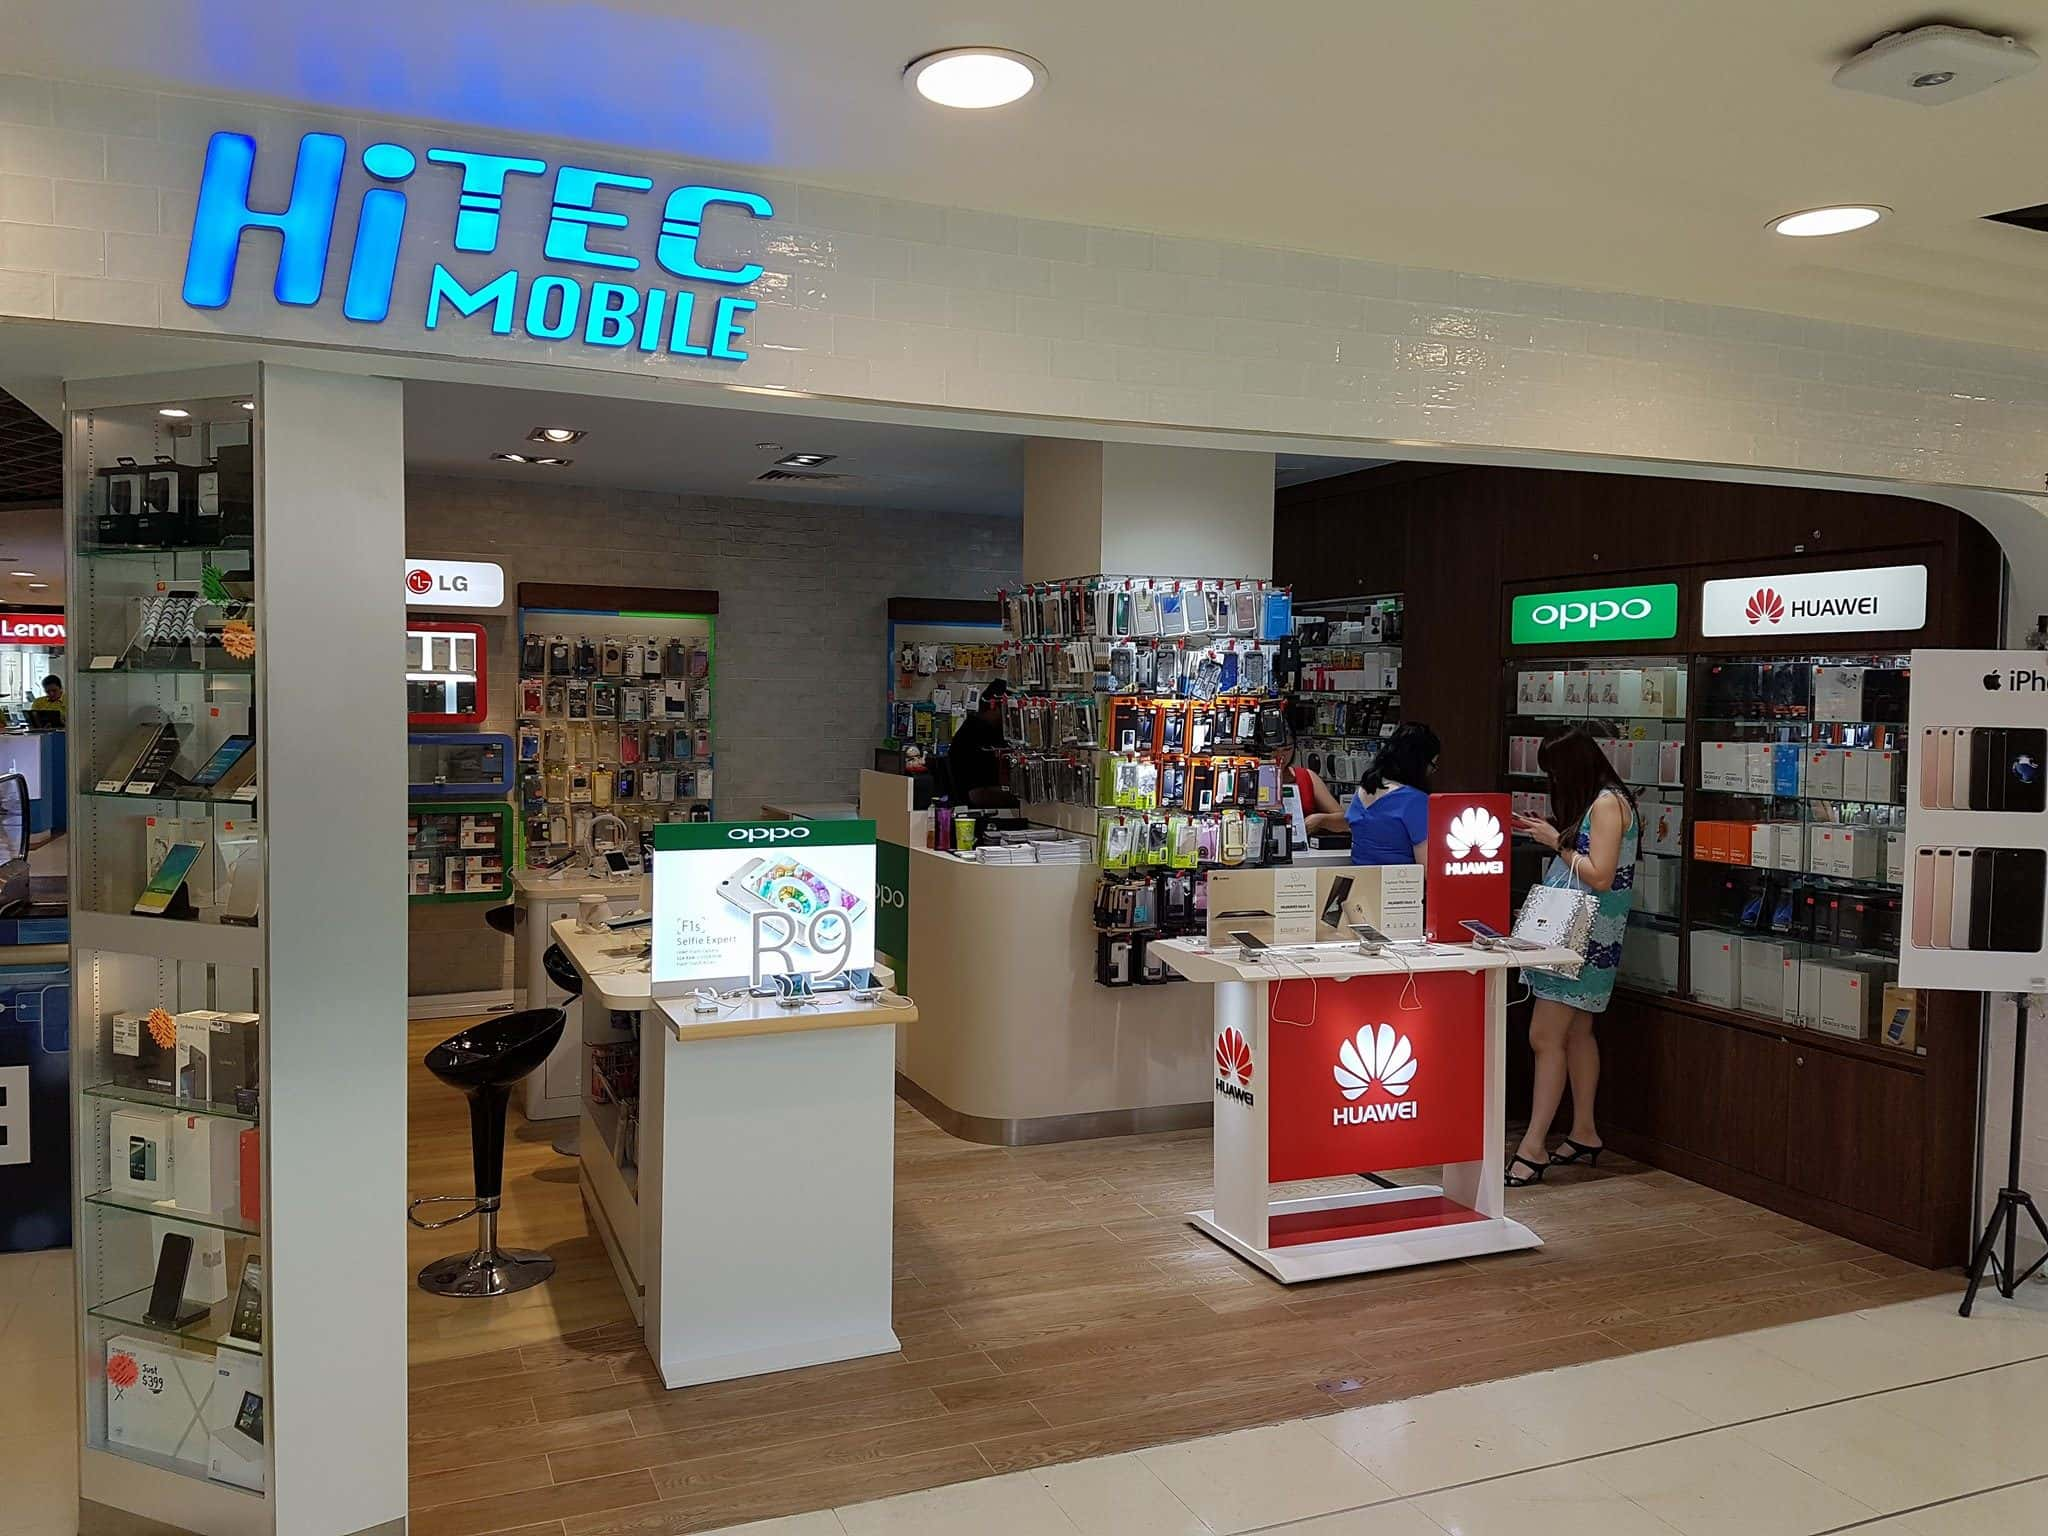 Hitec Mobile at Bugis Junction #03-24